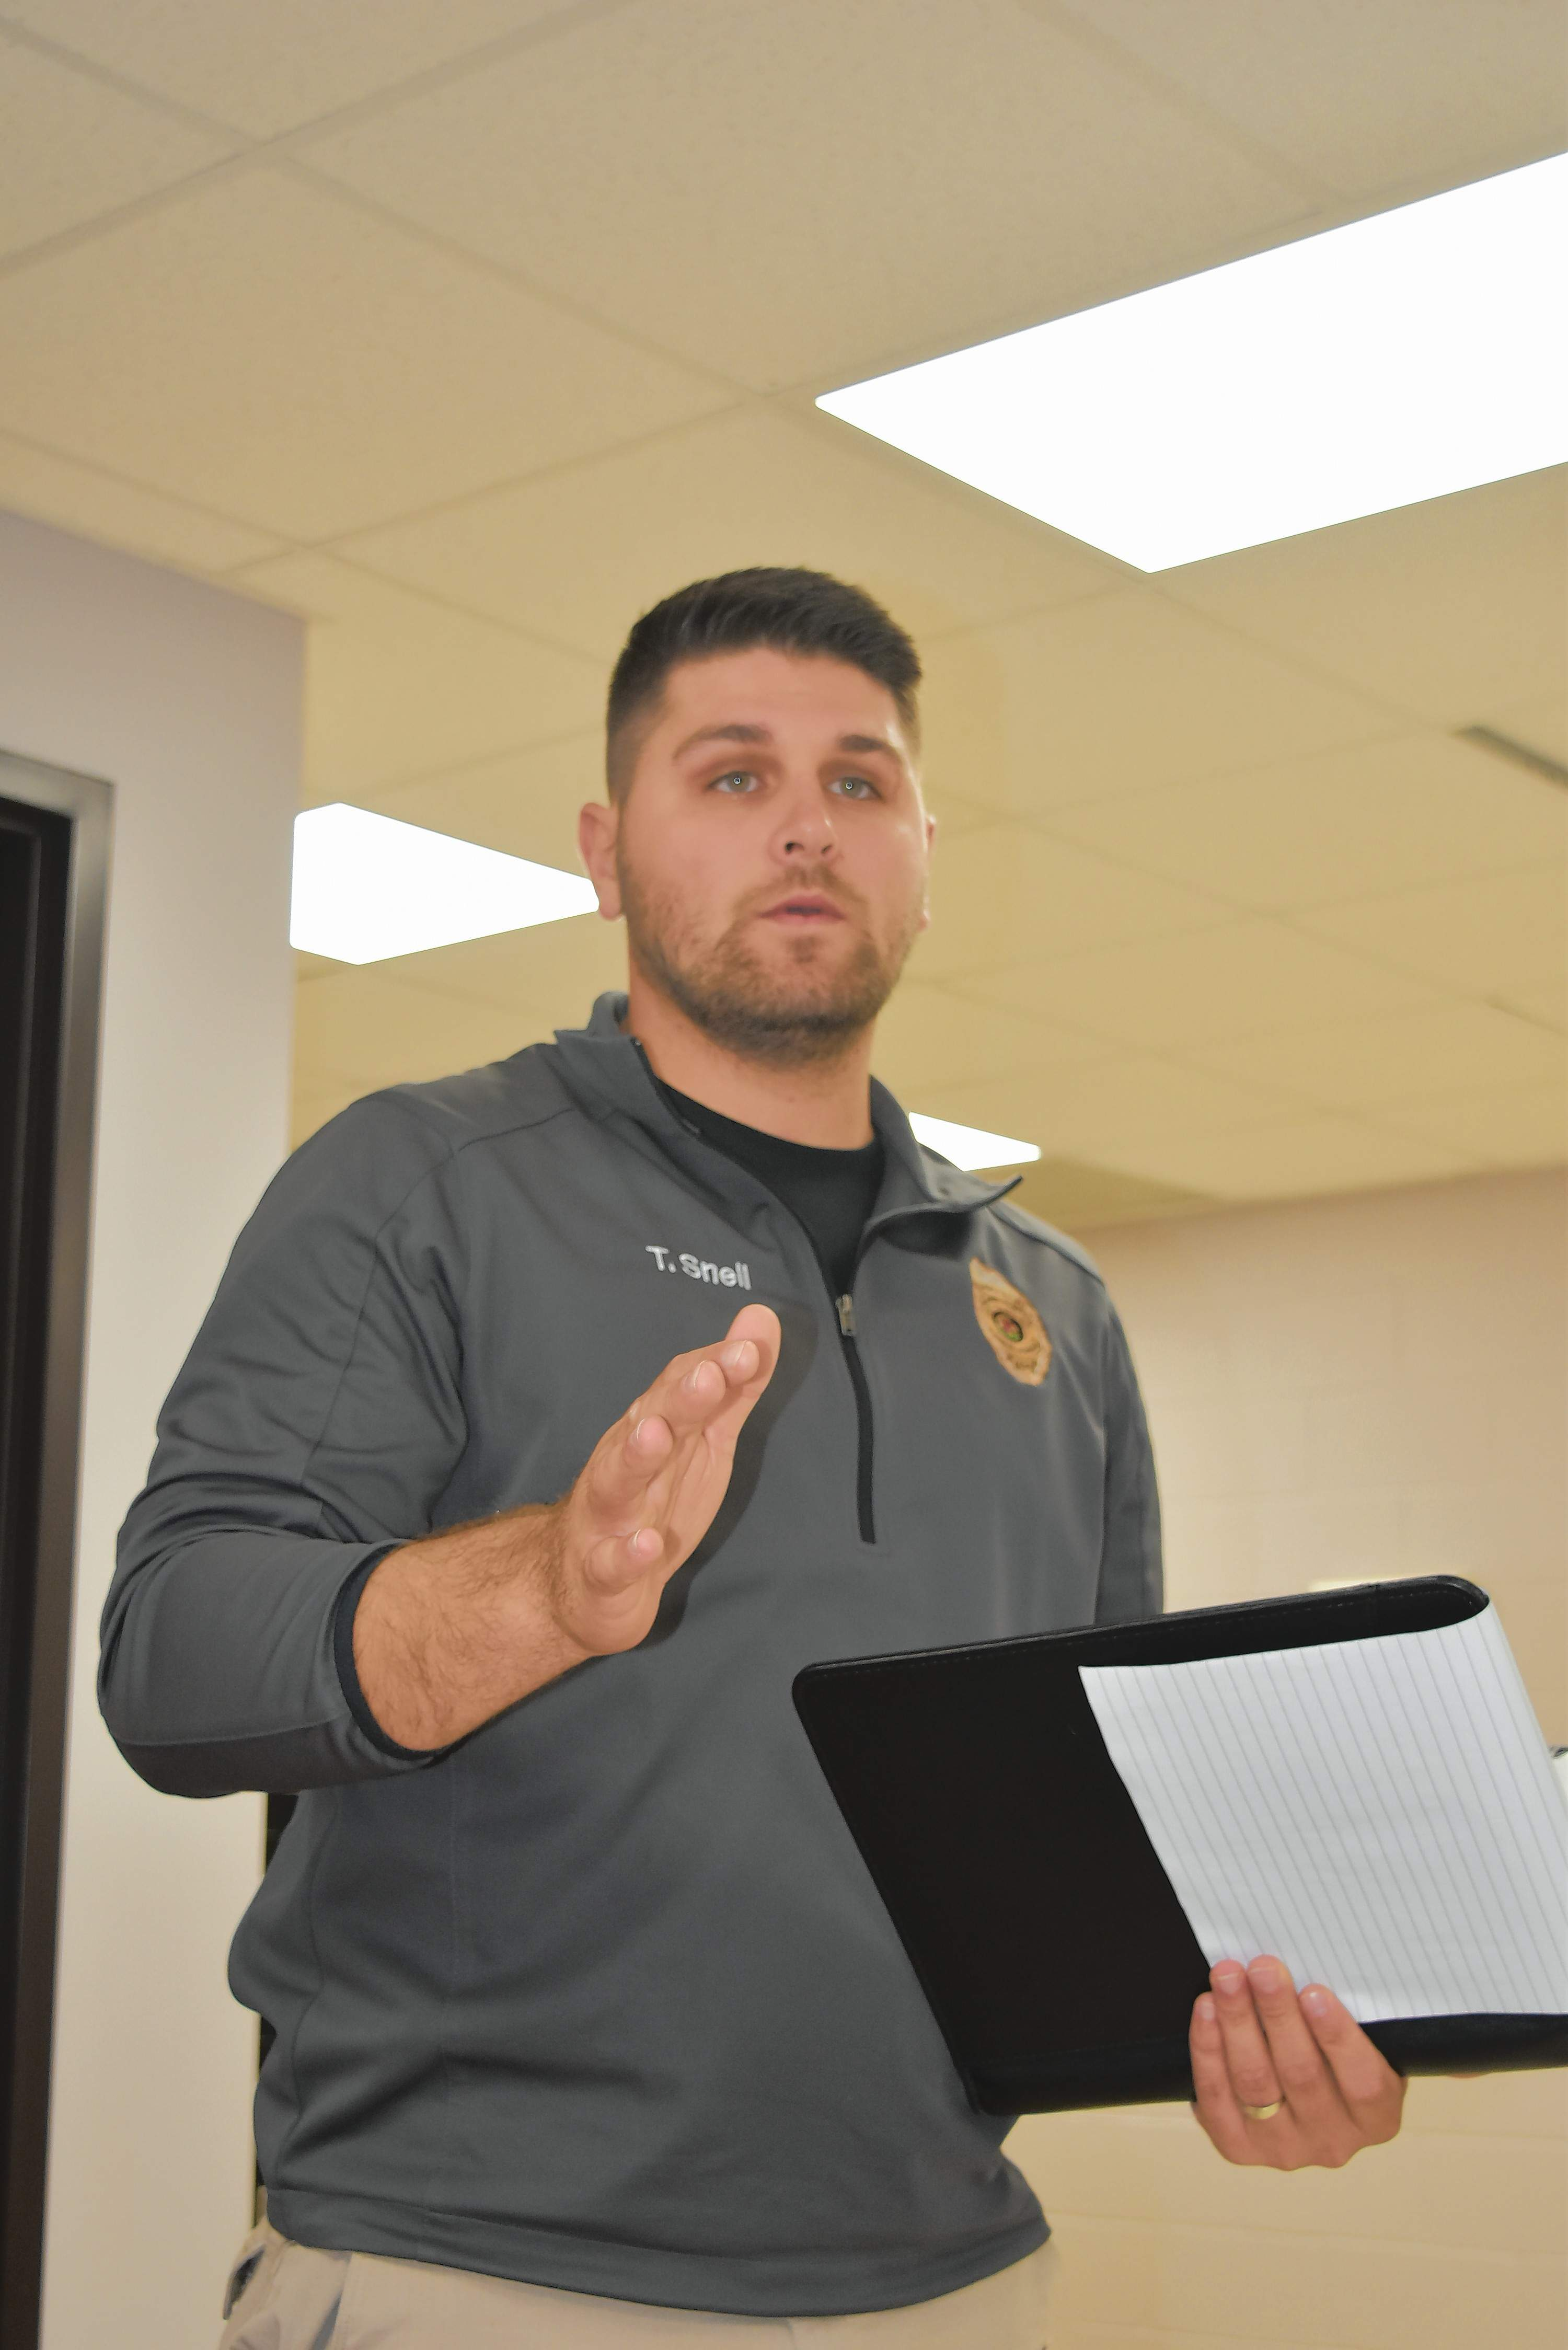 Franklin County Animal Control Supervisor Thad Snell explains the city's leash laws and said property owners who refuse to place leashes on their domestic animals may be fined.